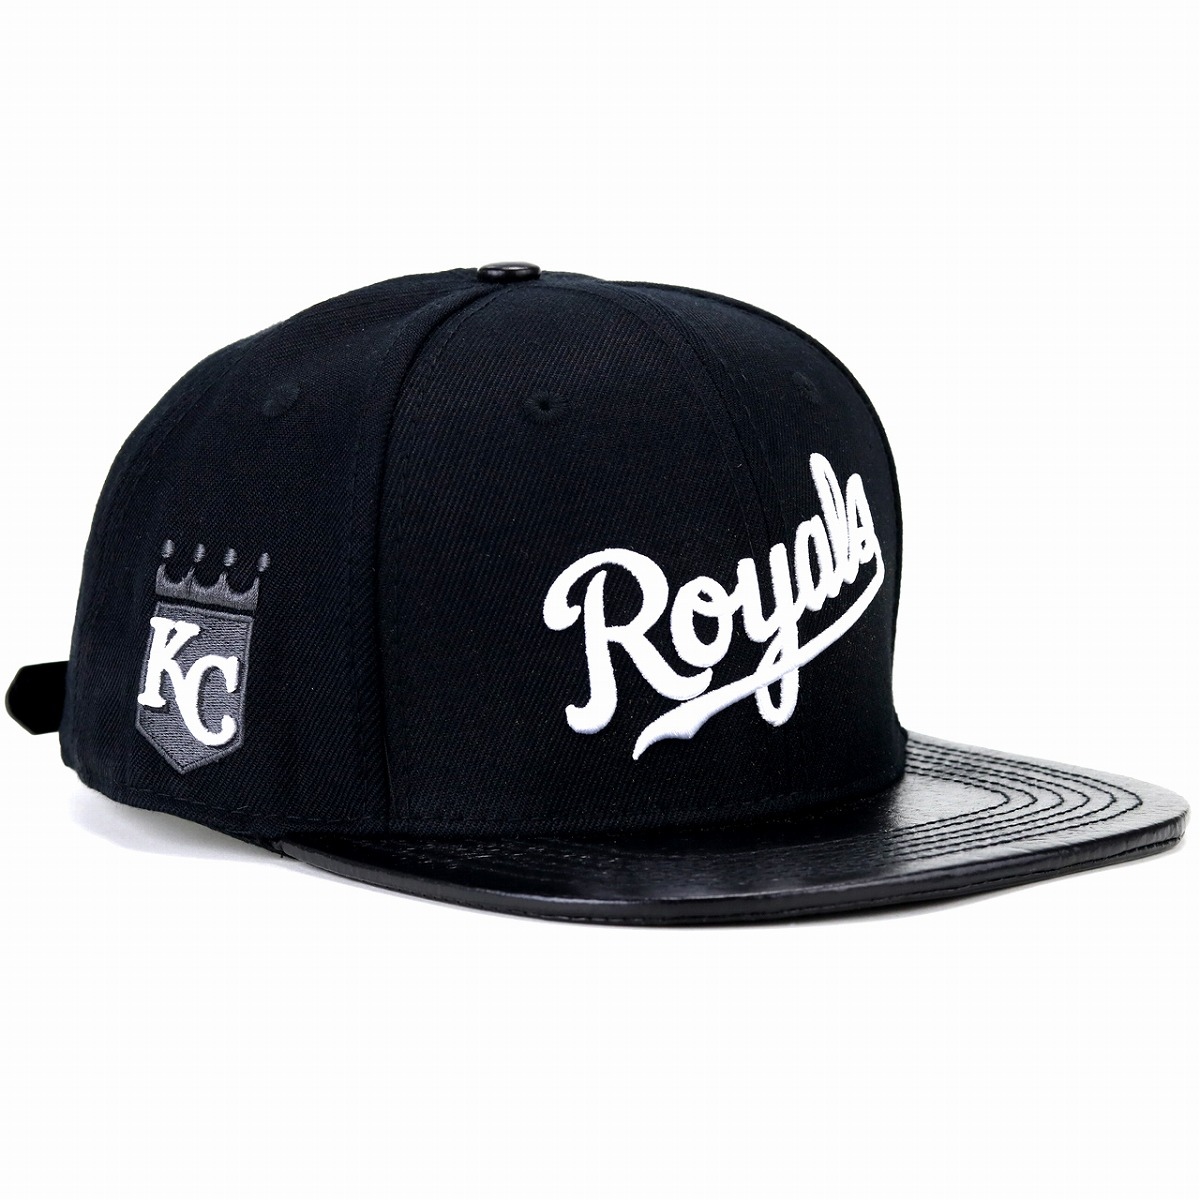 Professional standard Kansas city Royals cap men gap Dis hat Pro Standard MLB  Kansas City Royals Logo black black  baseball cap  1288782563cd